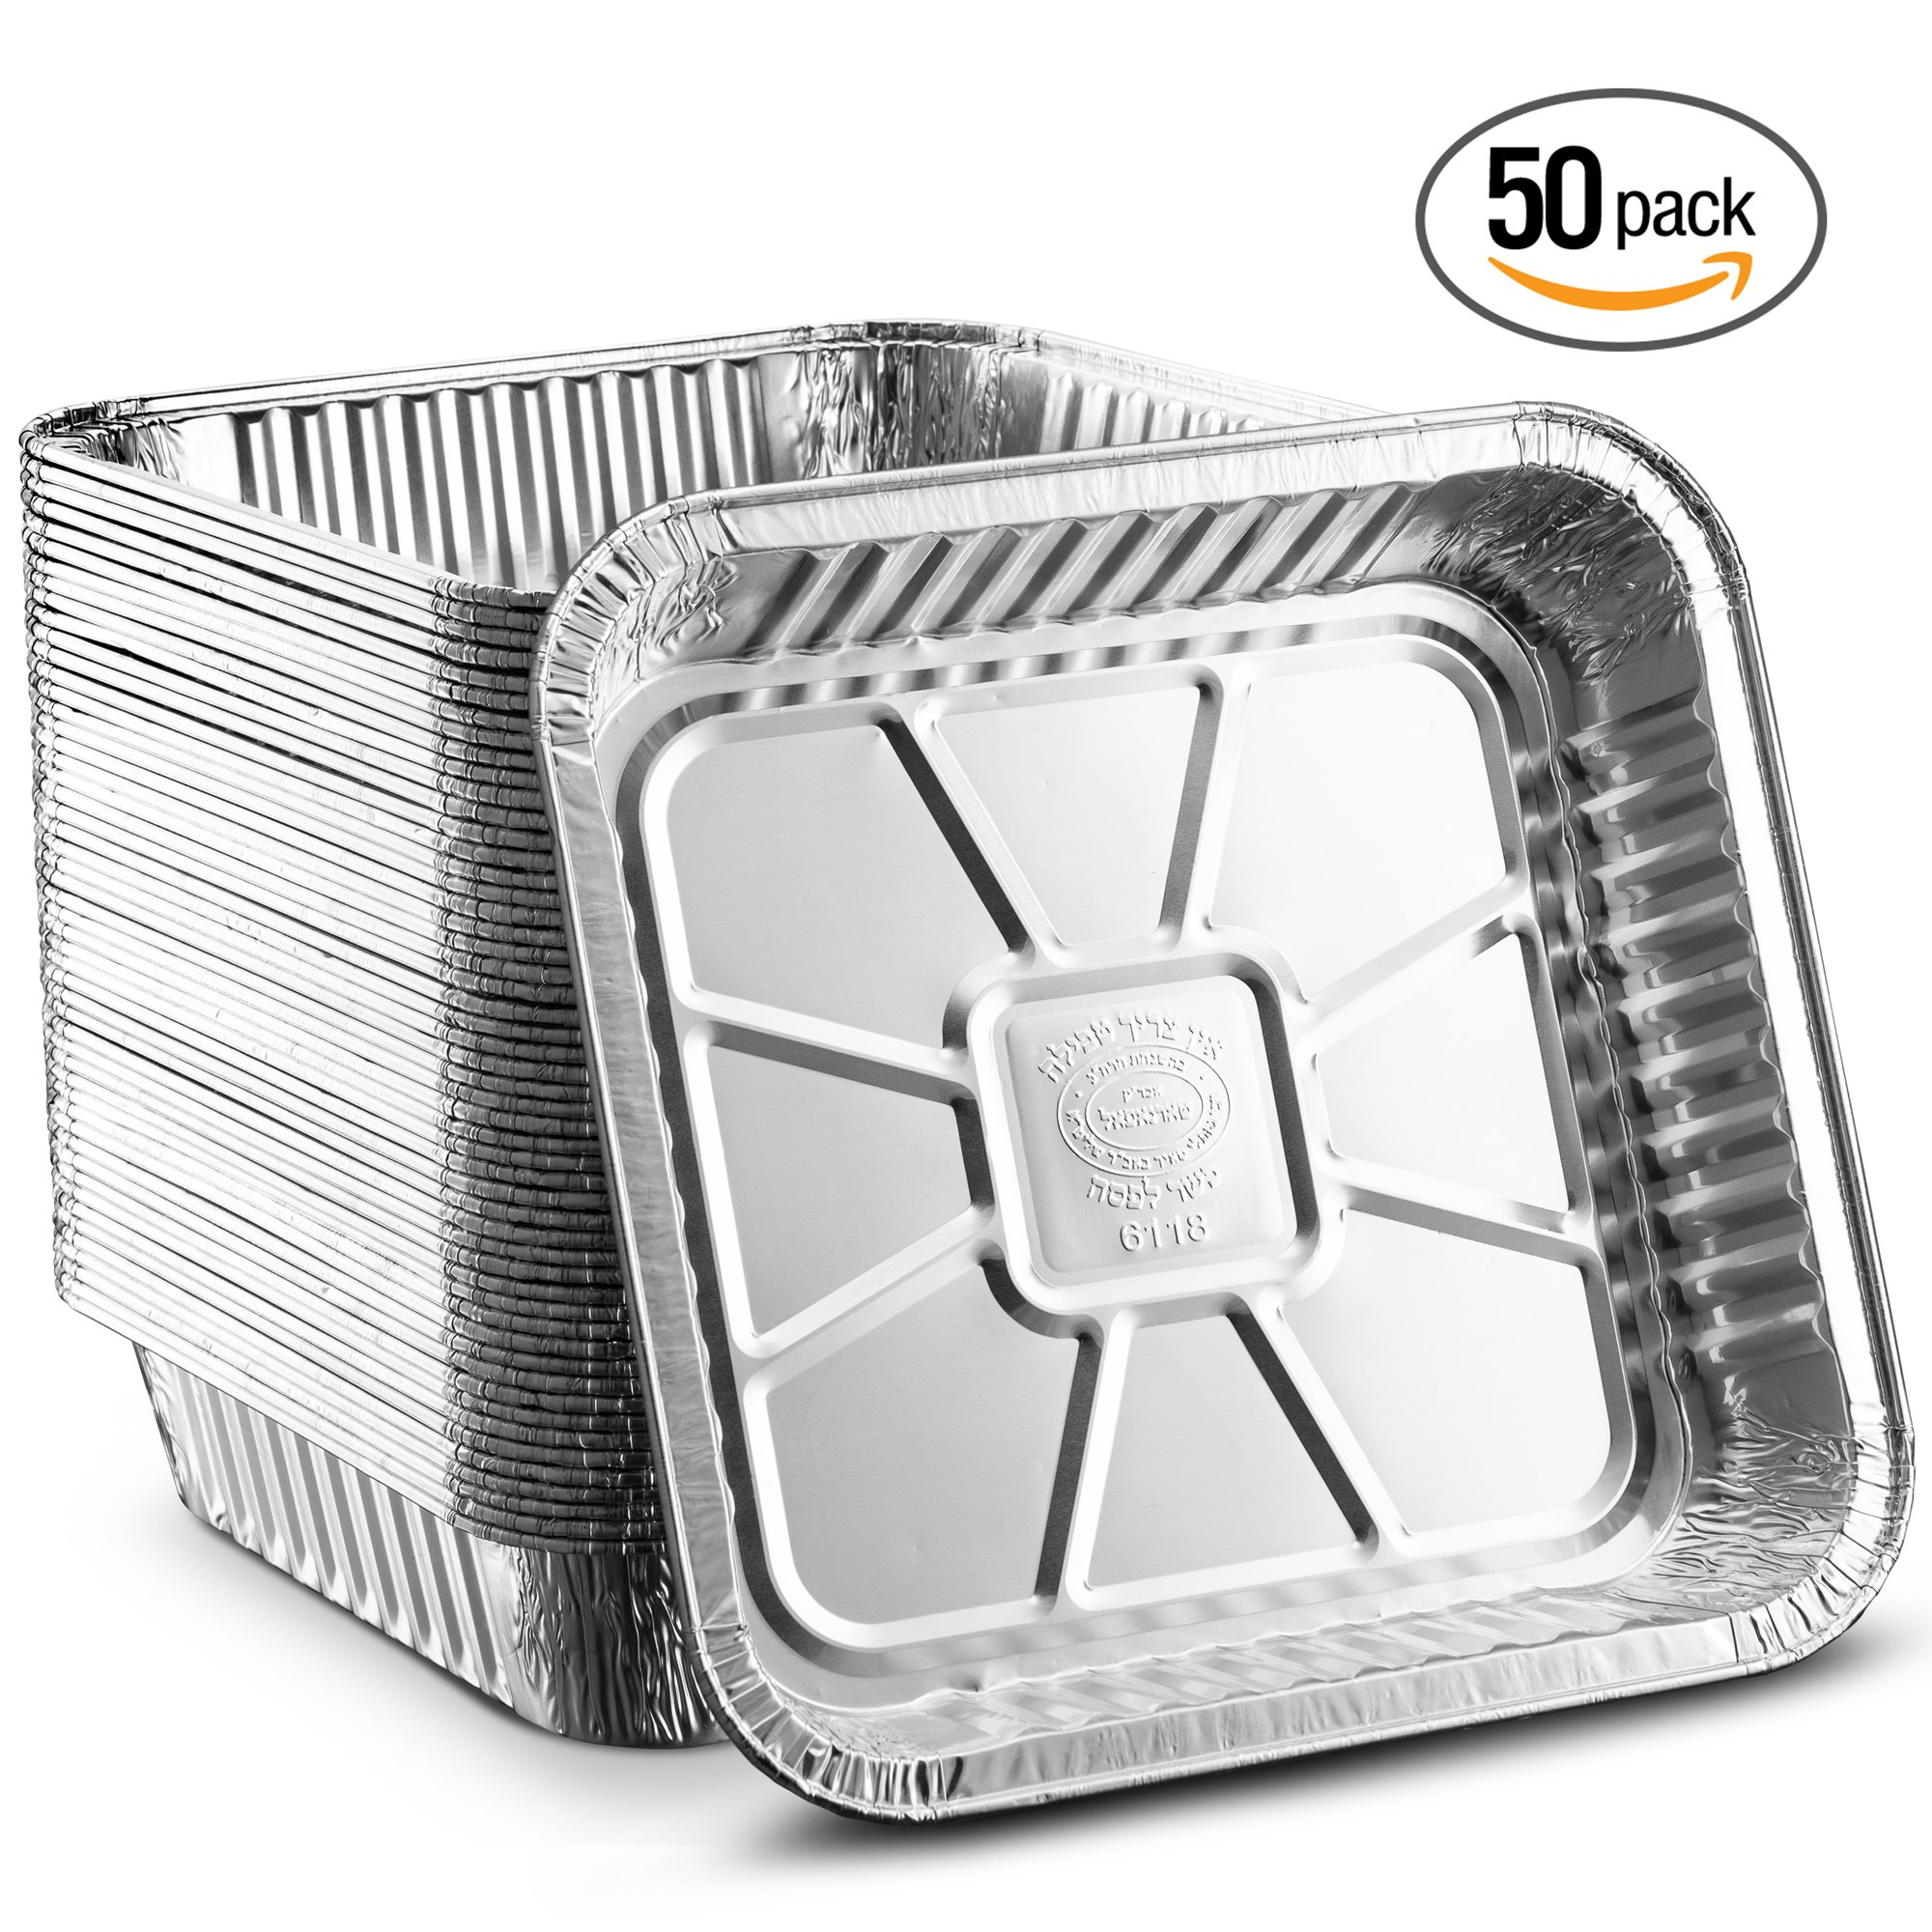 Propack Square baking Pans 8''x8'' Disposable Aluminum Foil Baking Tins For Baking, Cooking, Broiling, Roasting Pack of 50